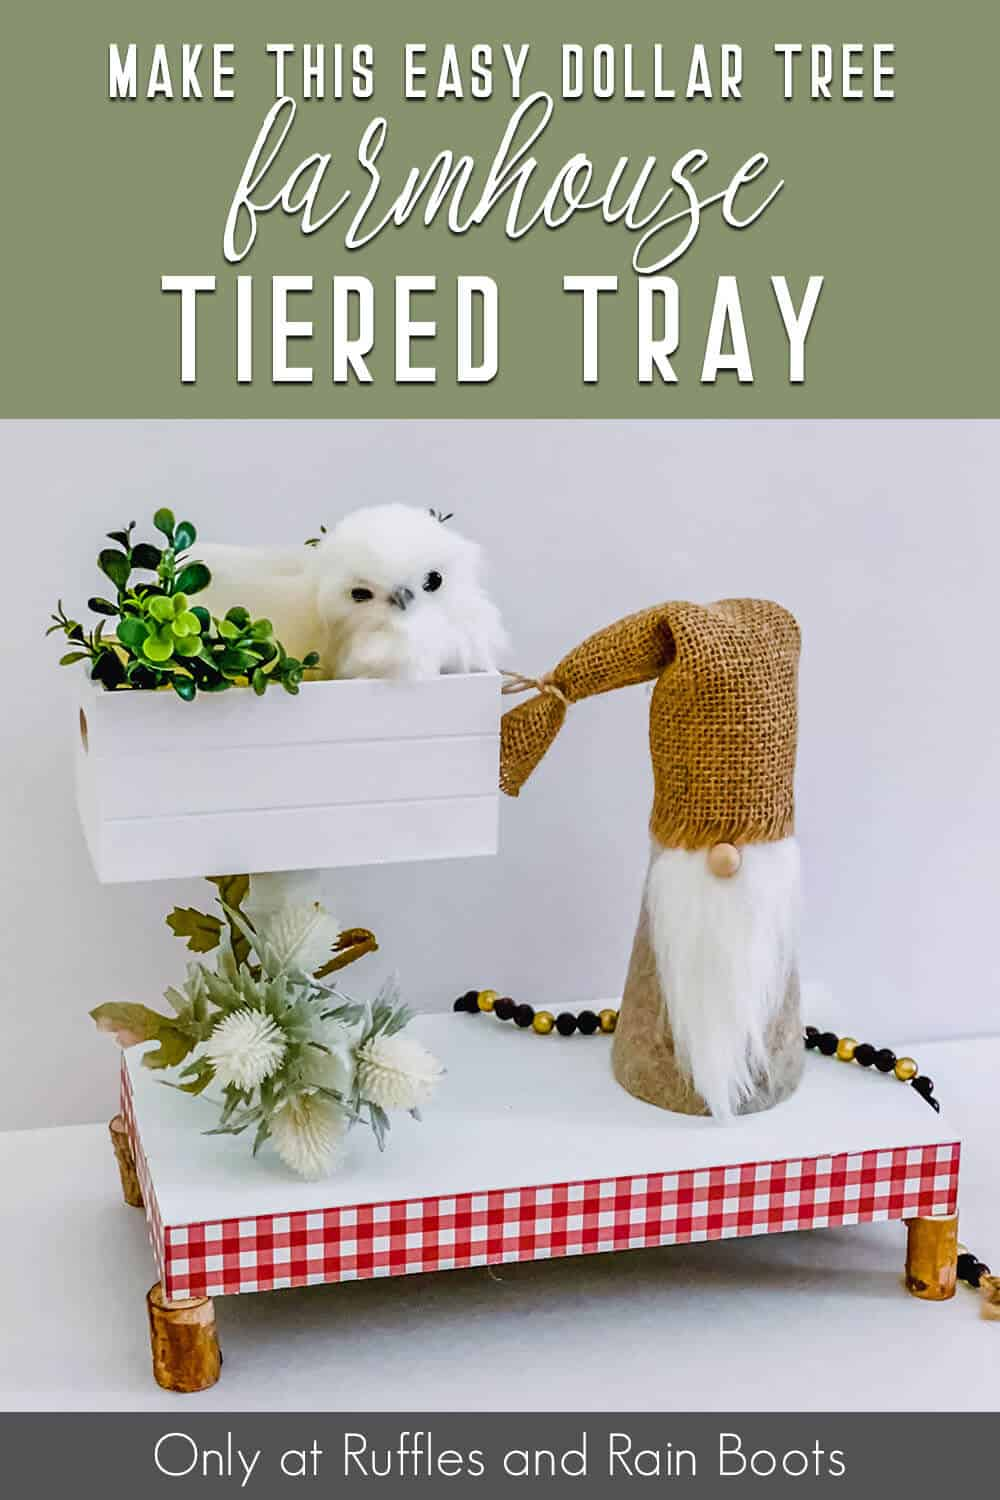 farmhouse tiered tray for gnomes with text which reads make this easy dollar tree farmhouse tiered tray